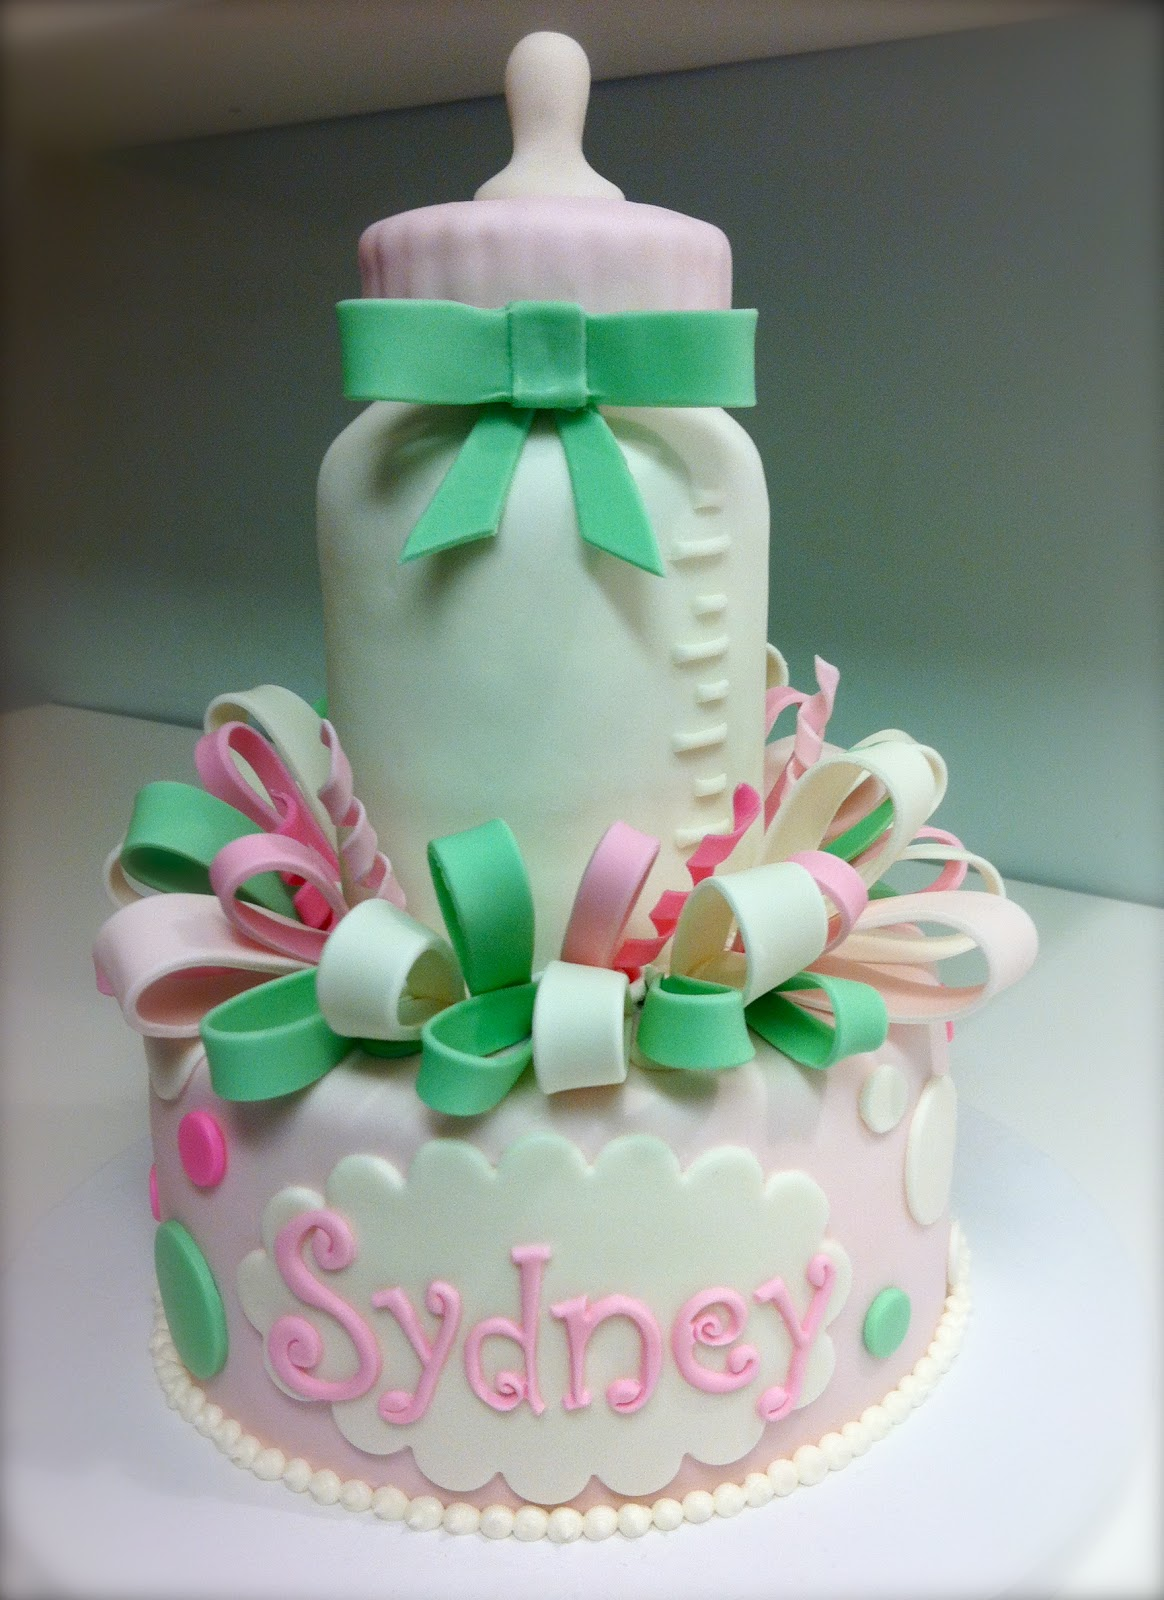 Cute Baby Cake Images : Cute Baby Shower Cake Foto Artis - Candydoll